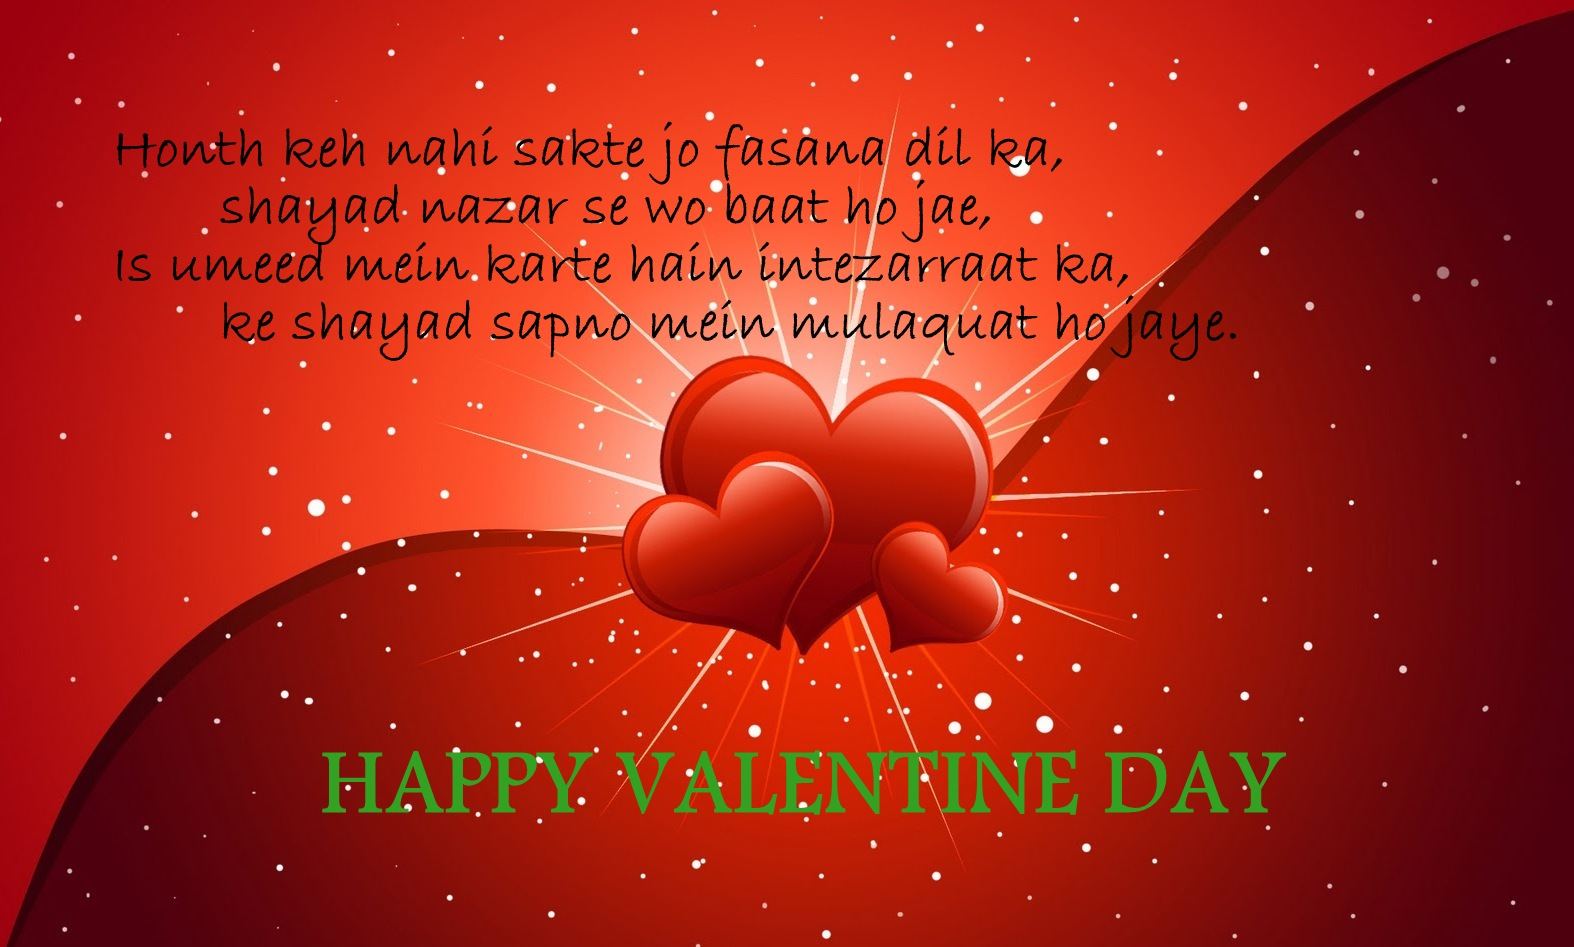 Valentines Day Messages Newspaper : Valentines Day Messages In French Hindi  Spanish